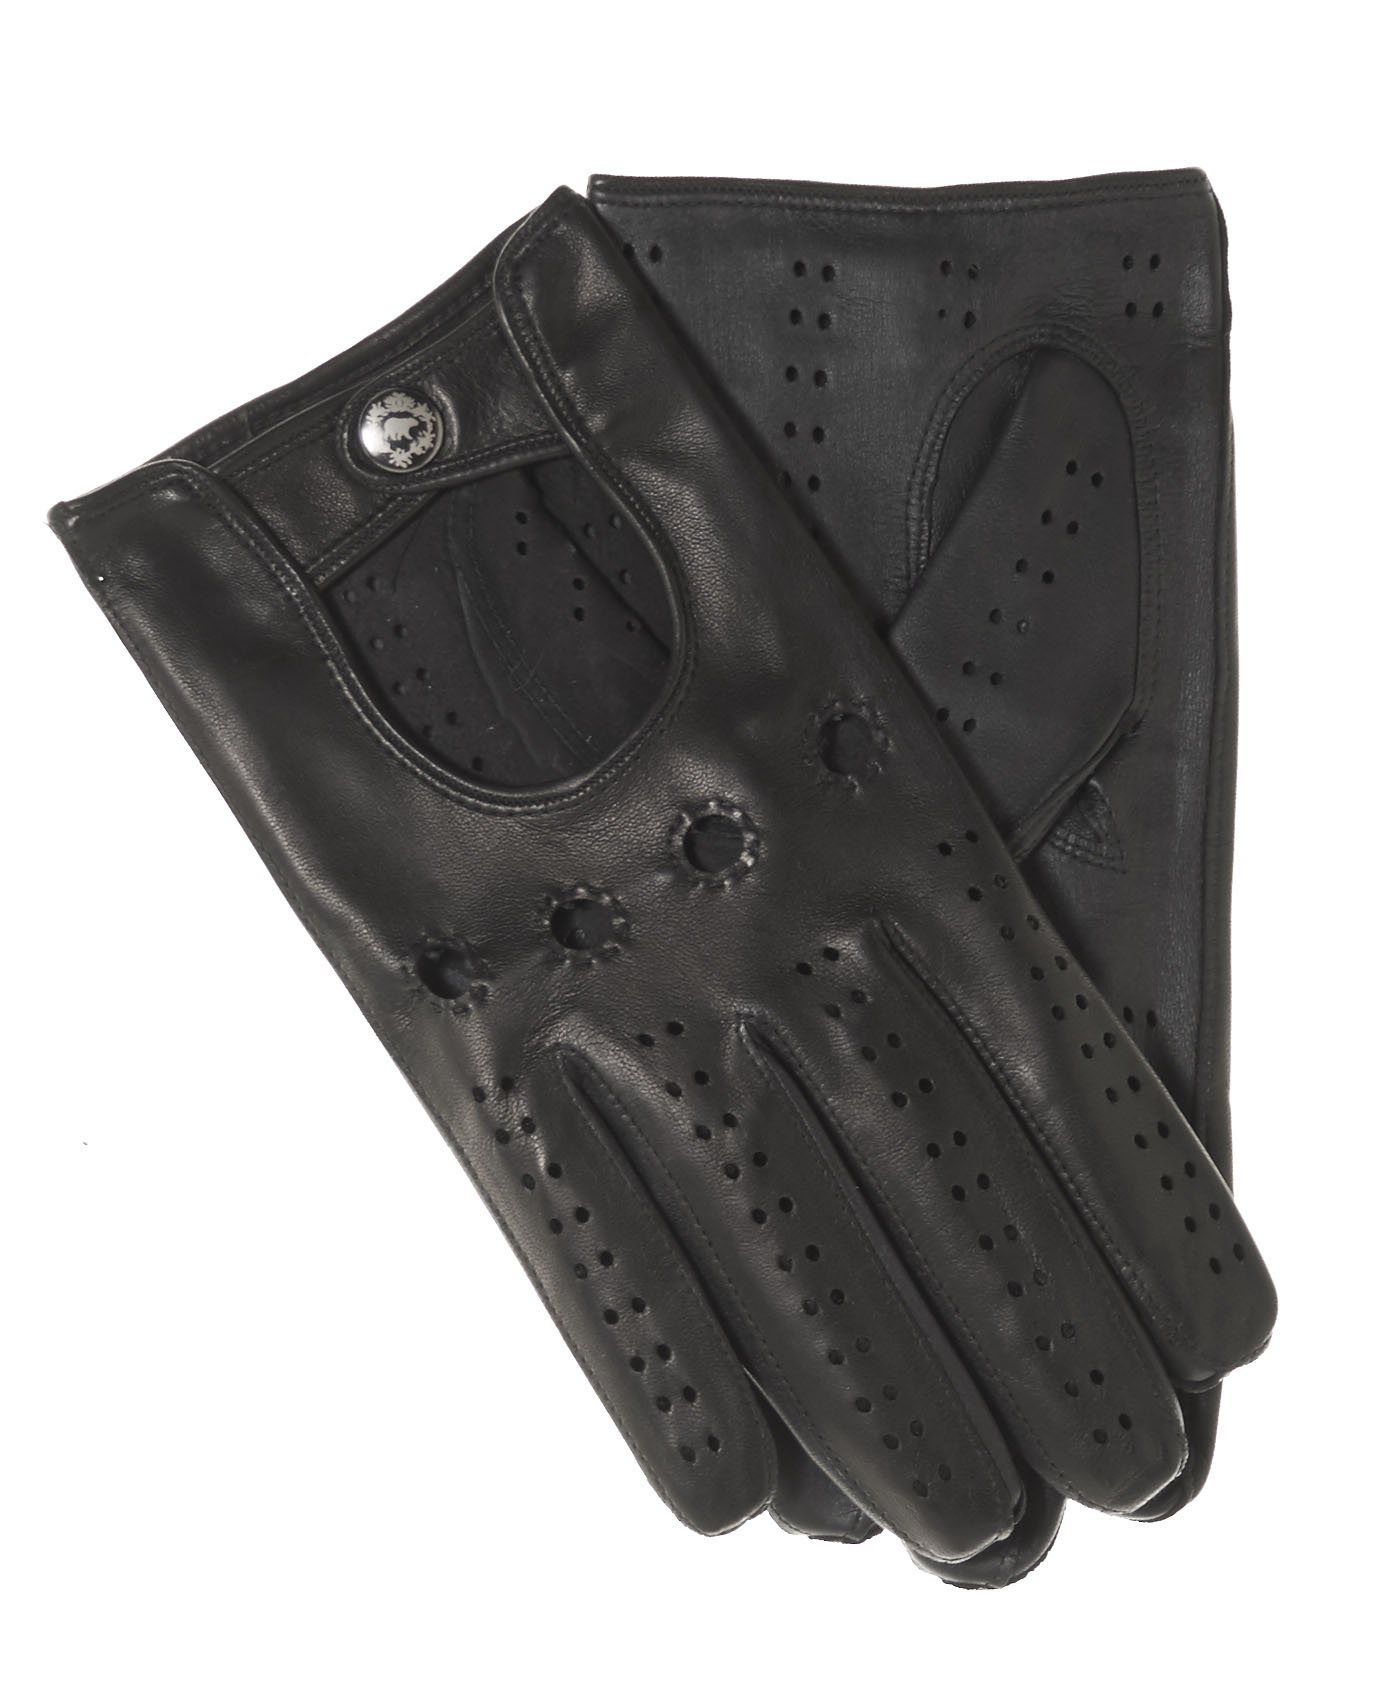 Fratelli Orsini Men's Italian Touchscreen Leather Driving Gloves Size 11 Color Black